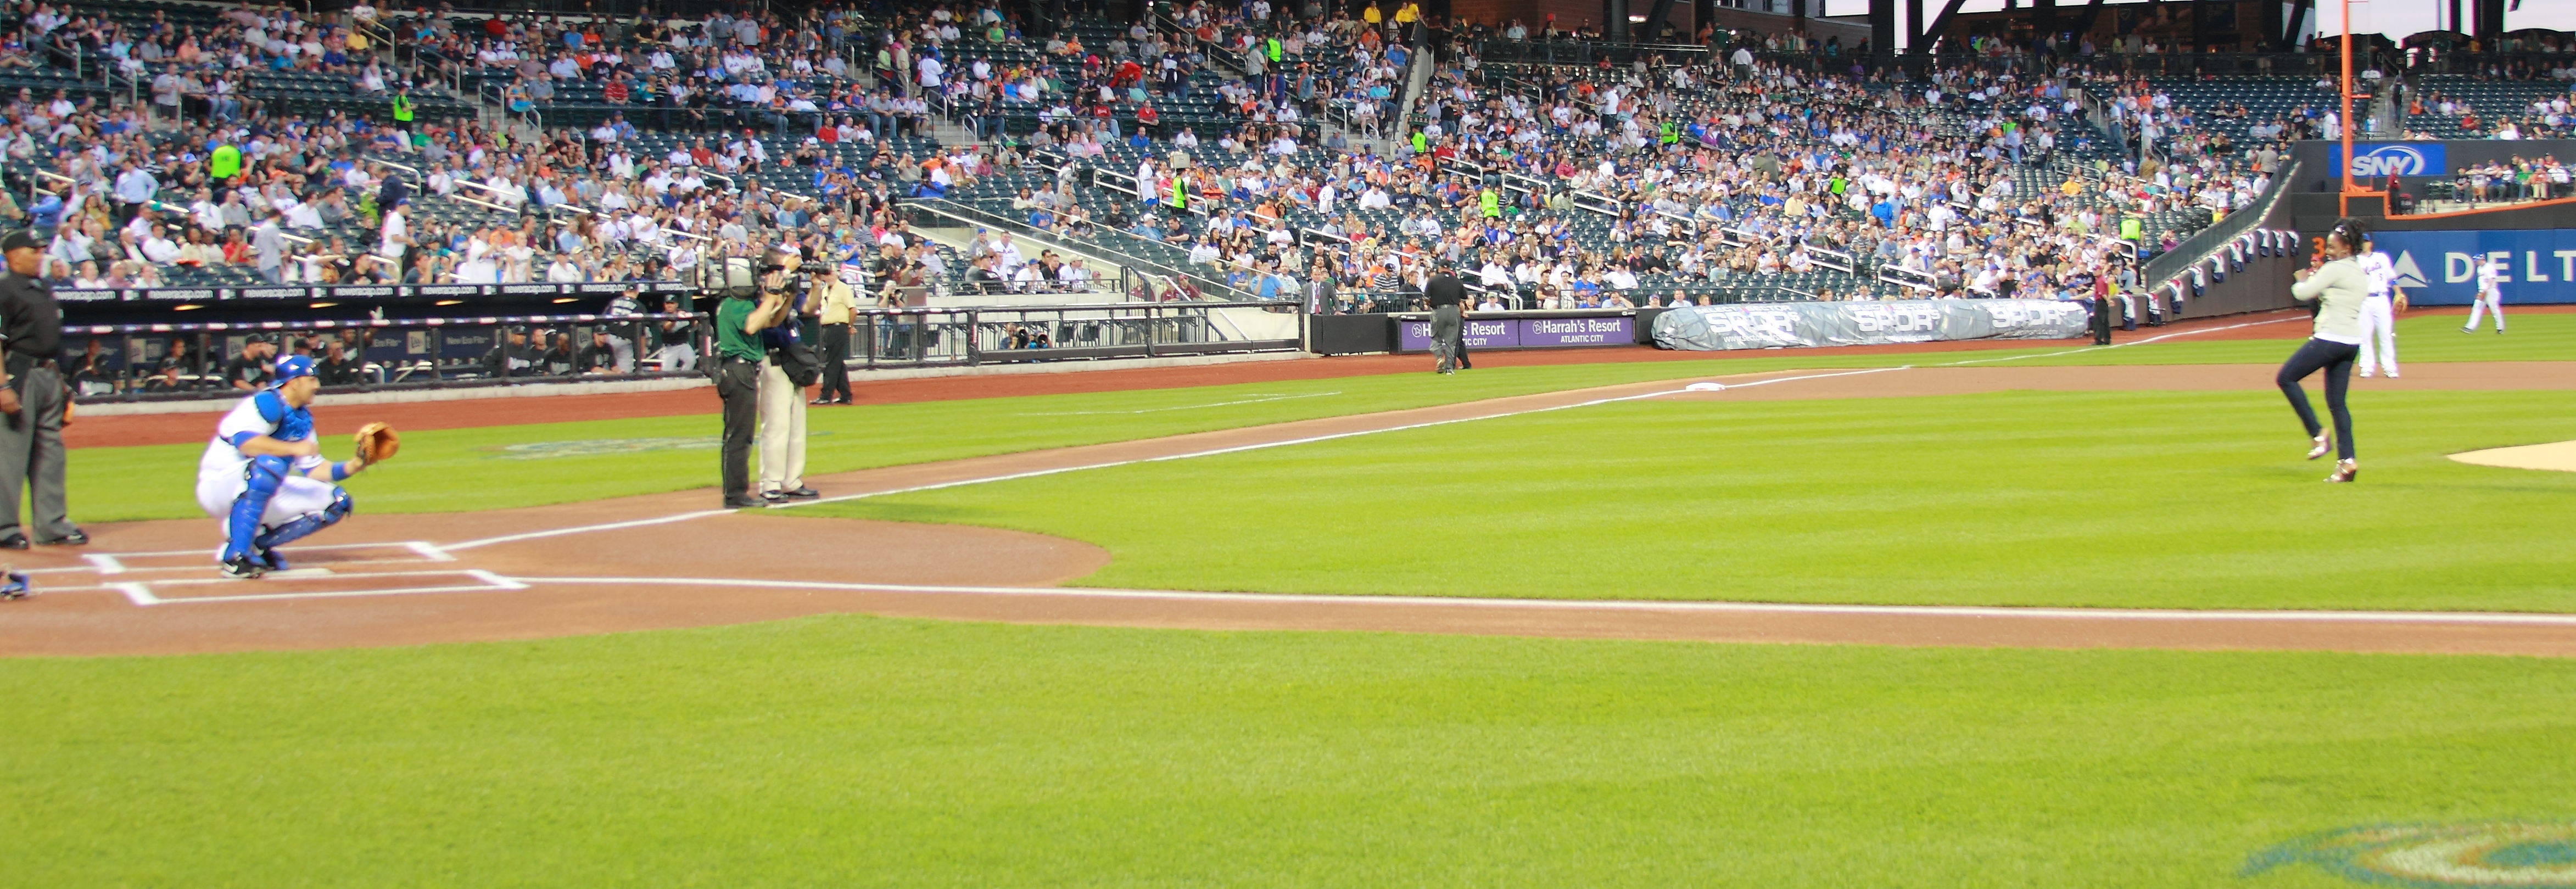 New York Mets First Pitch